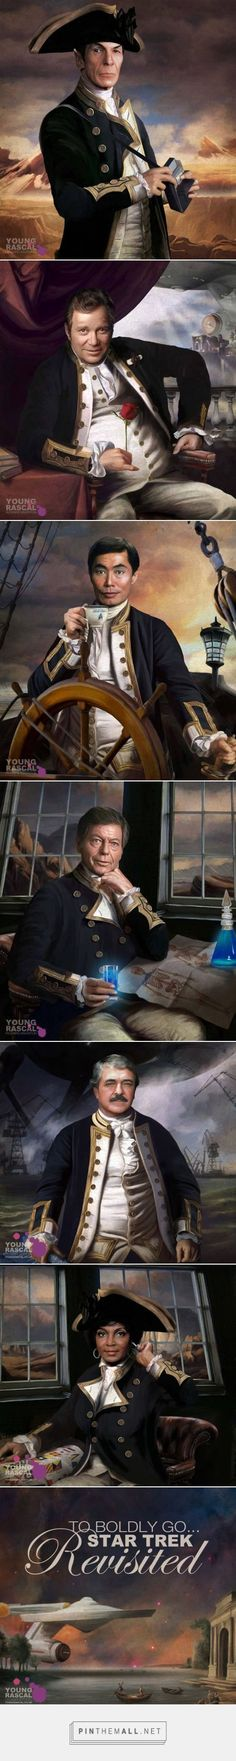 The Original Star Trek Crew In Old Naval Uniforms by Young Rascal Science Officer Spock, Commanding Officer James T Kirk, Helmsman Hikaru Sulu and, Chief Medical Officer Leonard McCoy, Chief Engineer Montgomery Scott, and Communications Officer Nyota Uhura - created via https://pinthemall. Woow